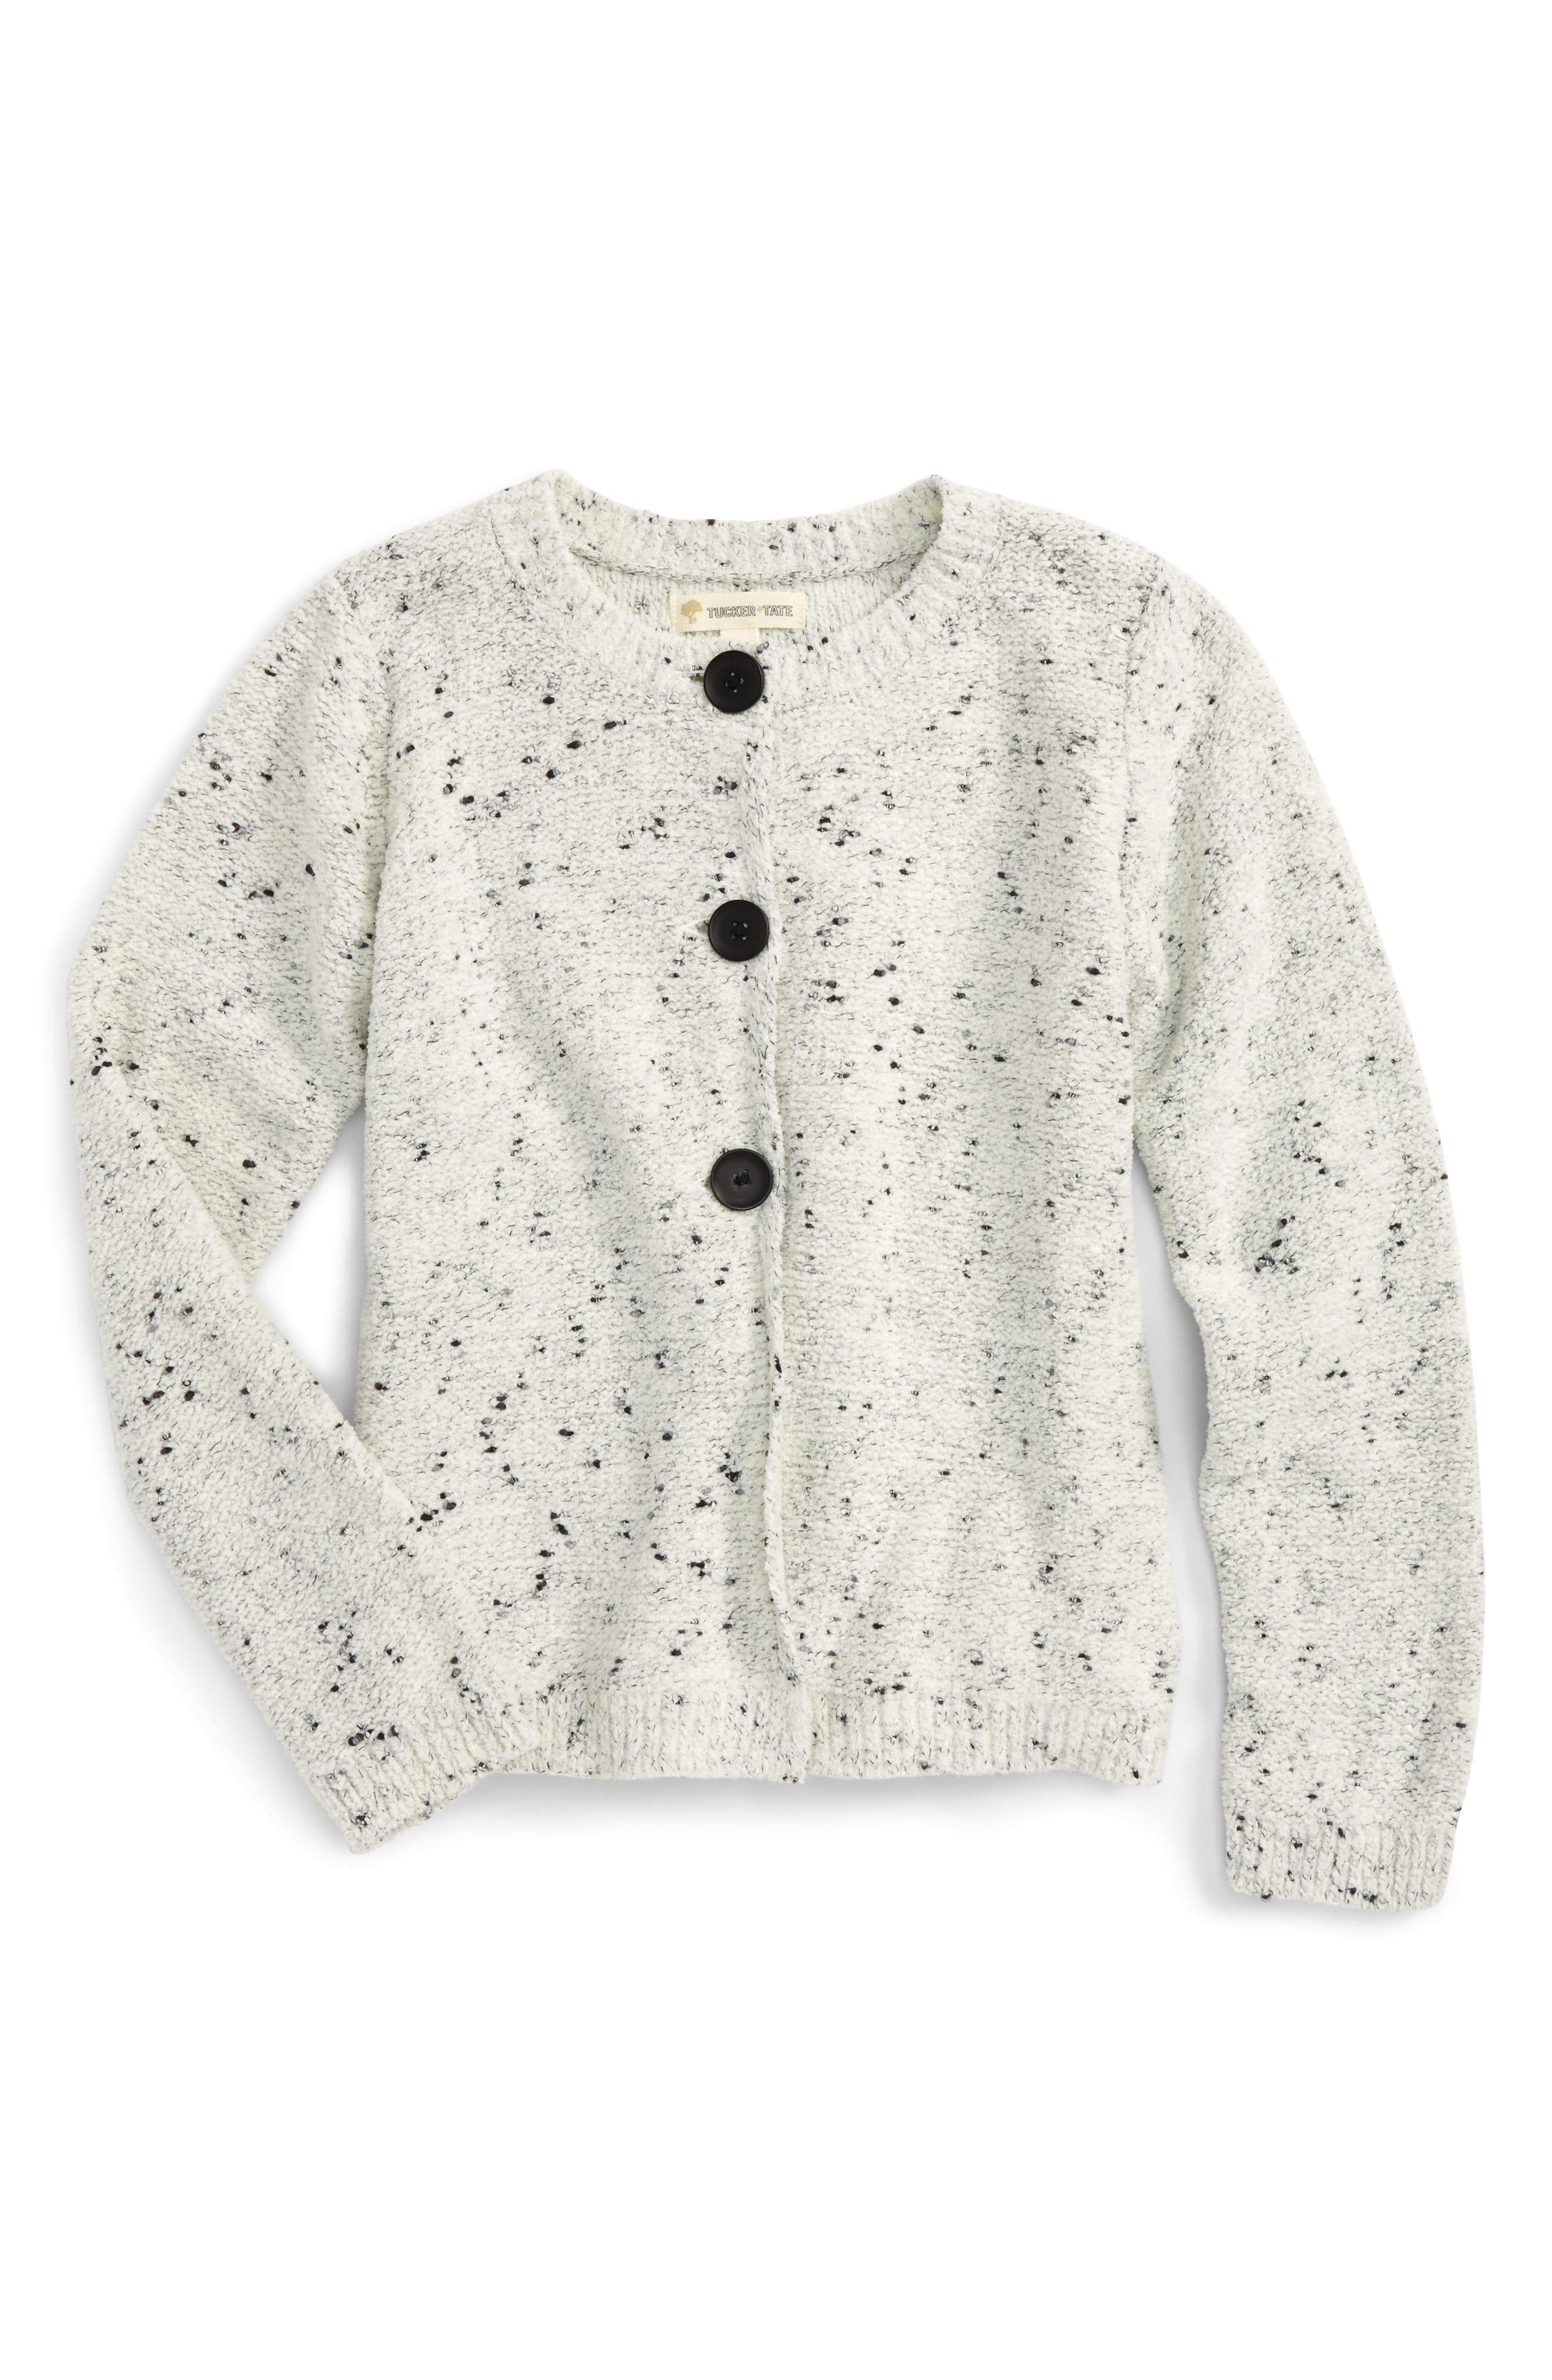 Tucker + Tate Speckle Swing Cardigan (Toddler Girls, Little Girls & Big Girls)